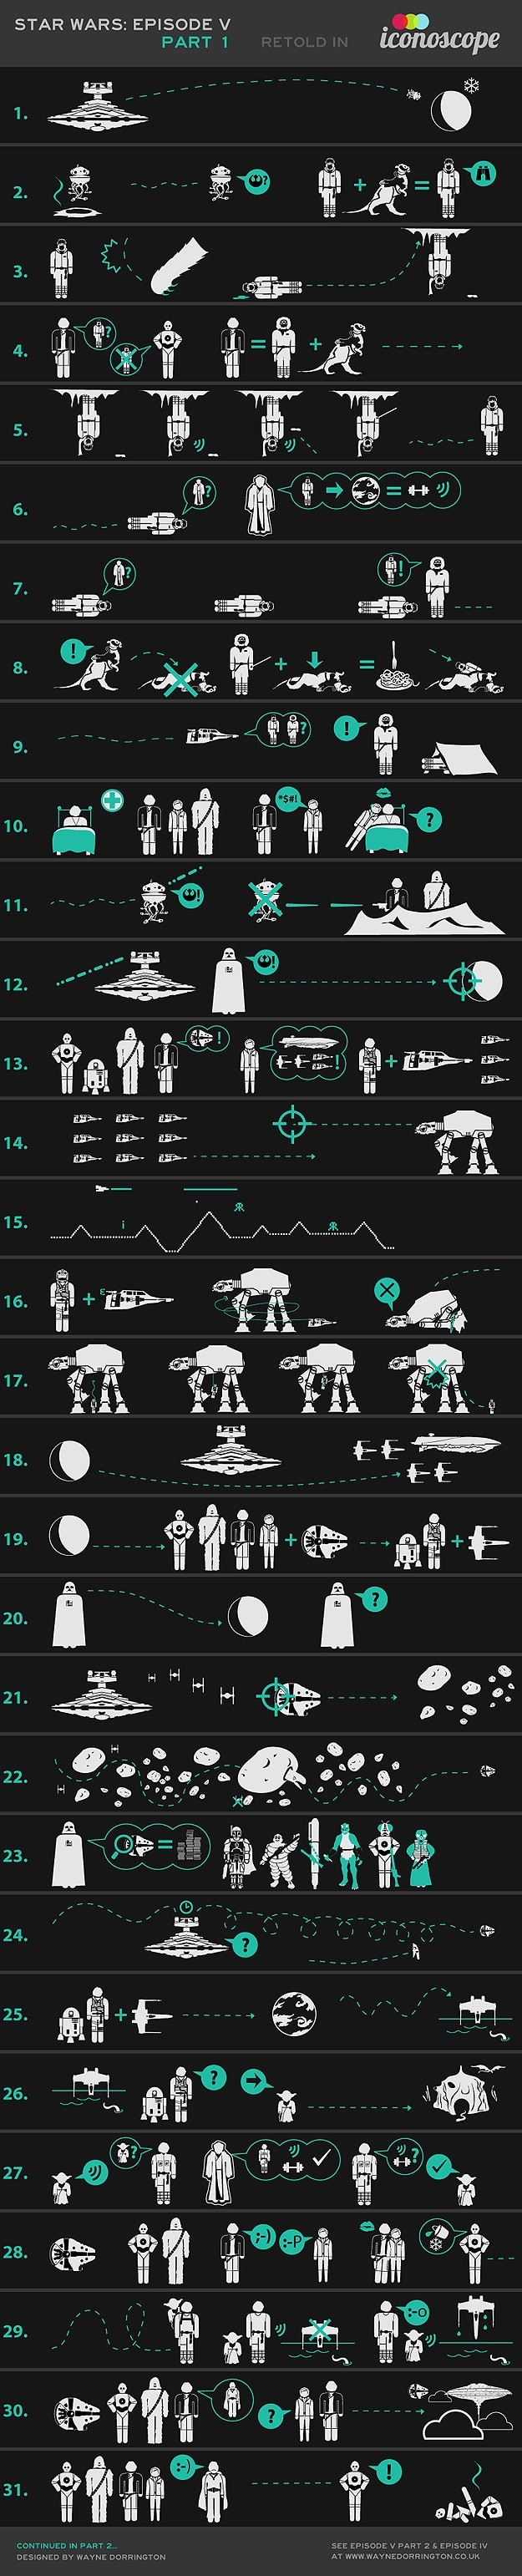 Empire Strikes Back In Icons